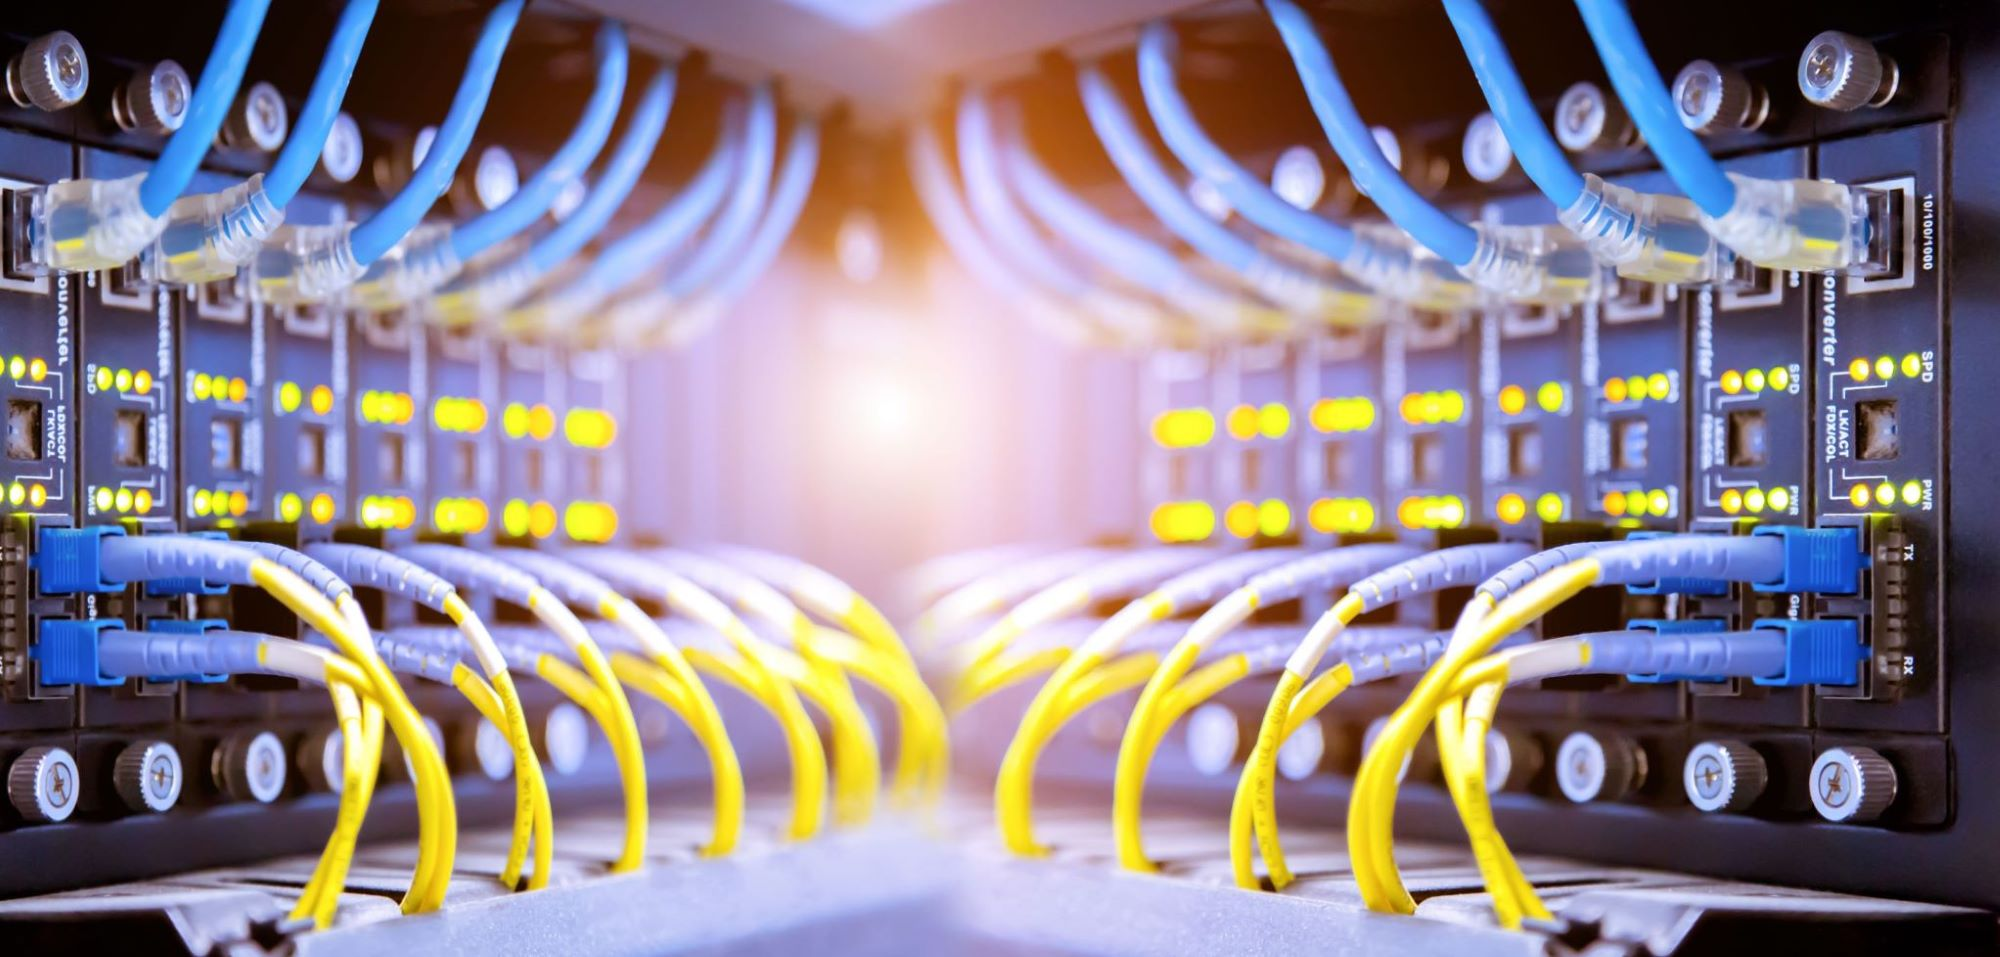 The Link Between Hyperscale Data Centers and Next-Generation Ethernet Connectivity